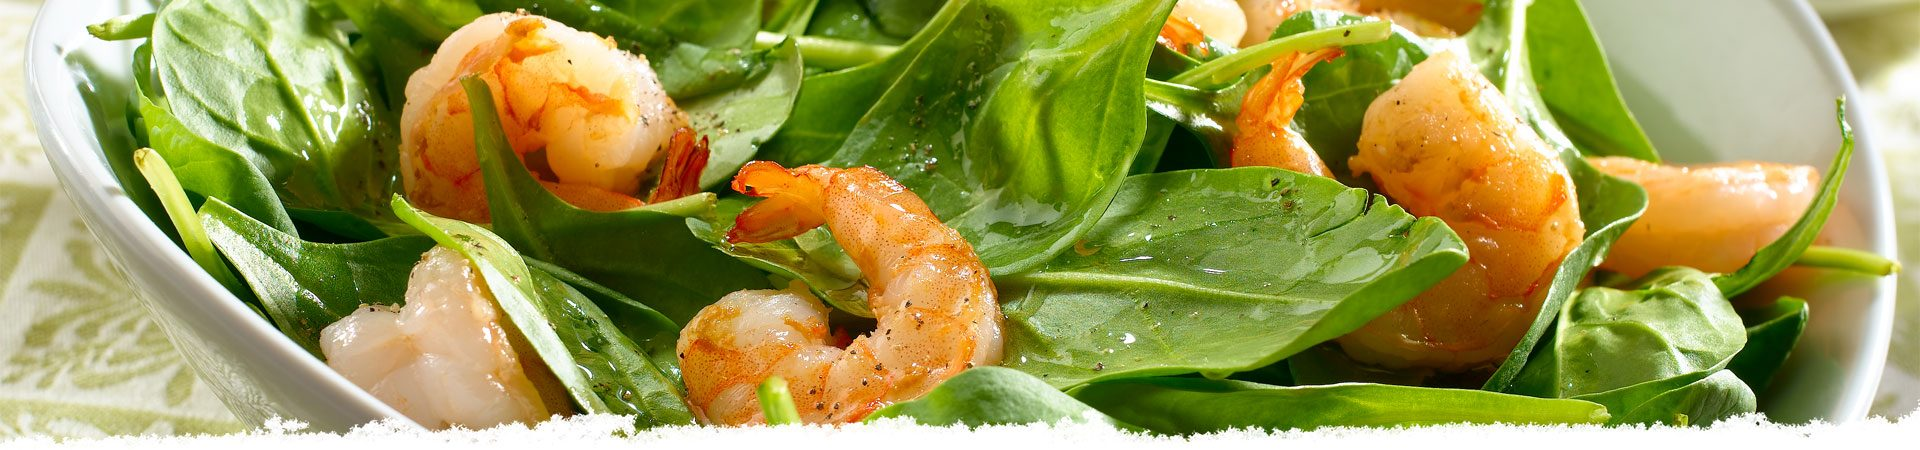 Pan Roasted Shrimp with Lemon, Garlic & Spinach